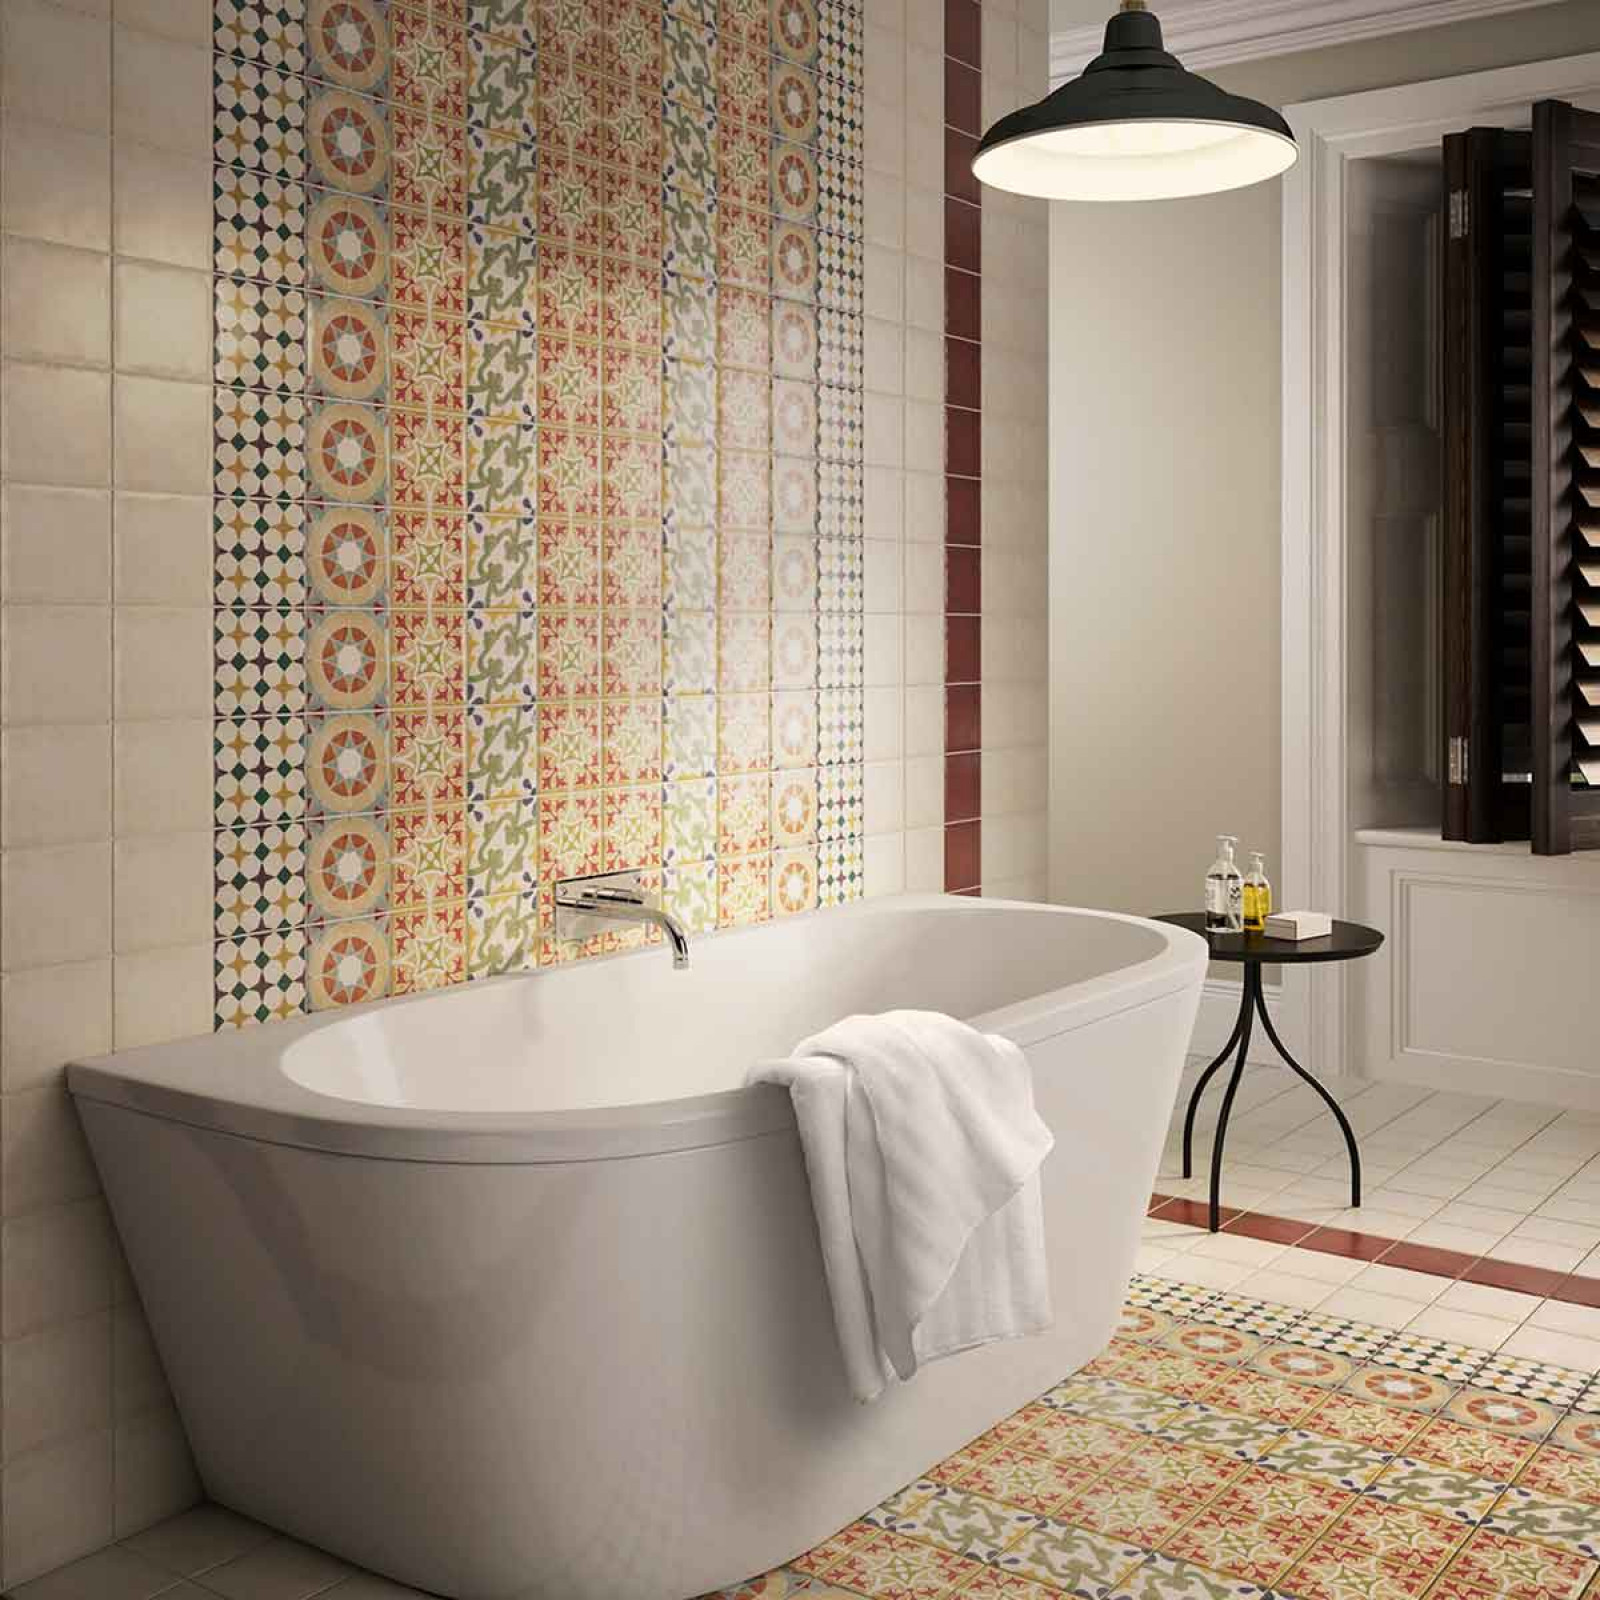 Wall Tiles For Kitchen Bathroom British Ceramic Tile